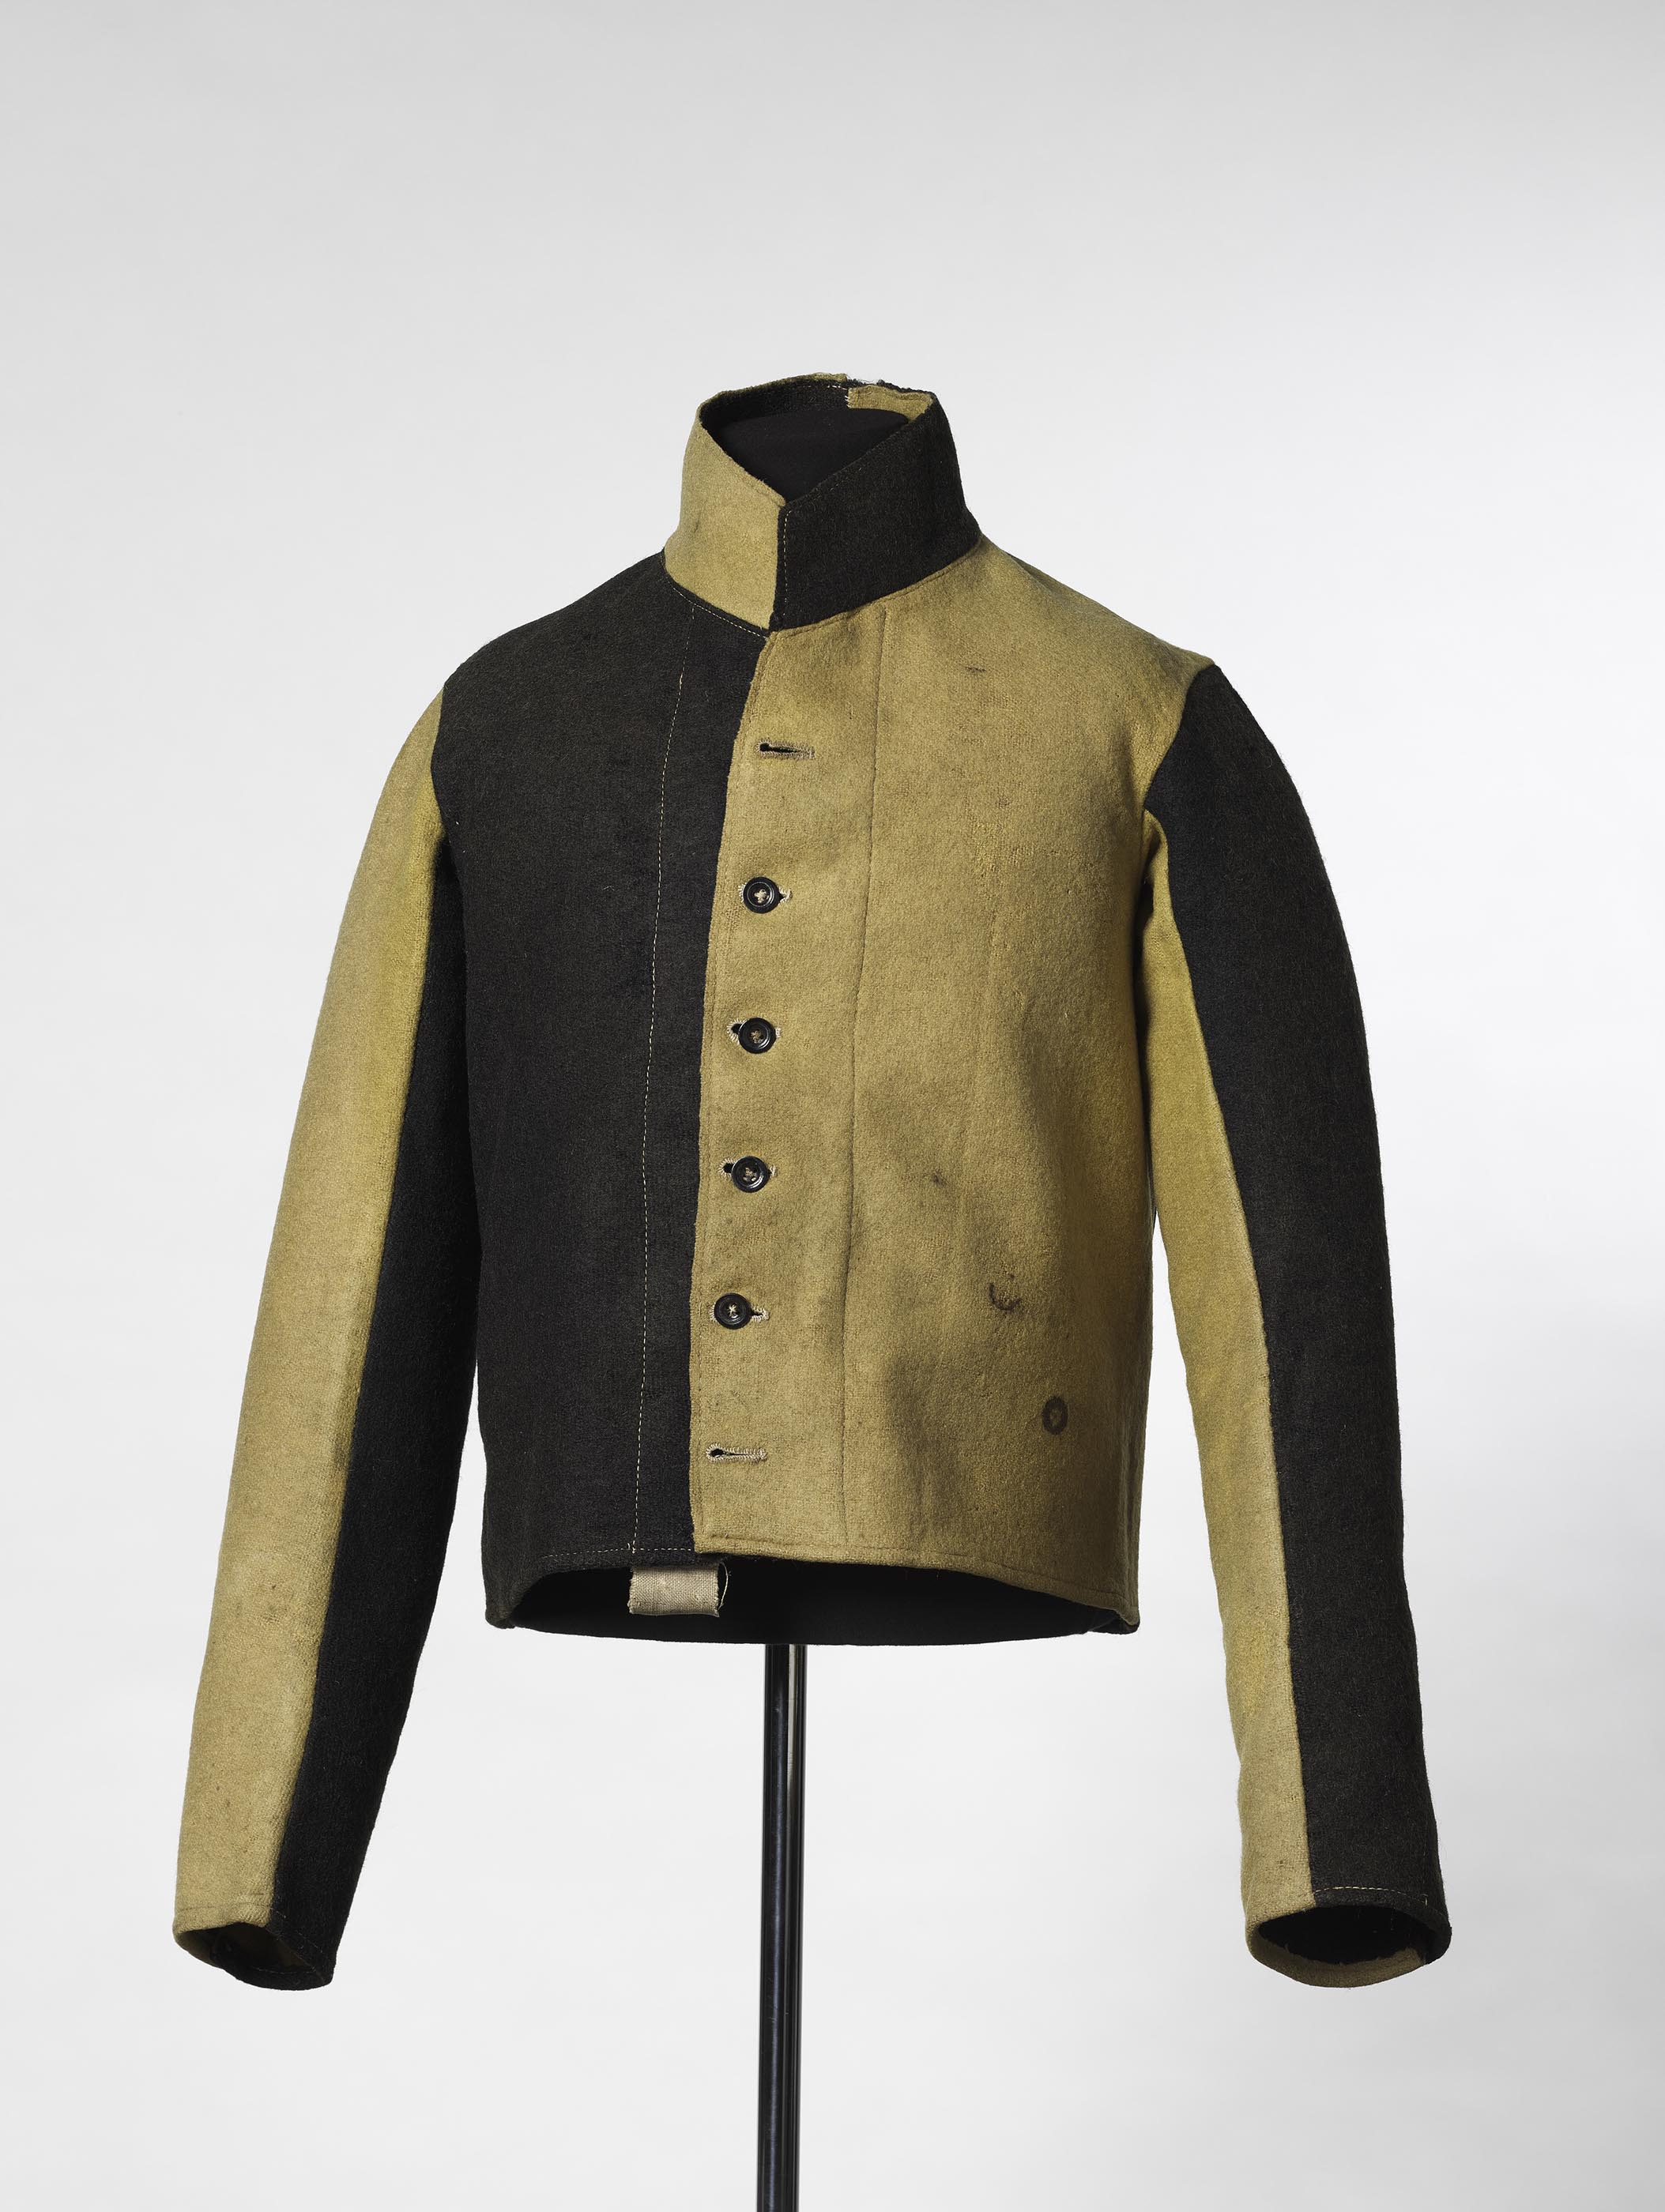 Convict's black and yellow woollen work jacket, from Campbell Street Goal, Hobart, late 1850s.